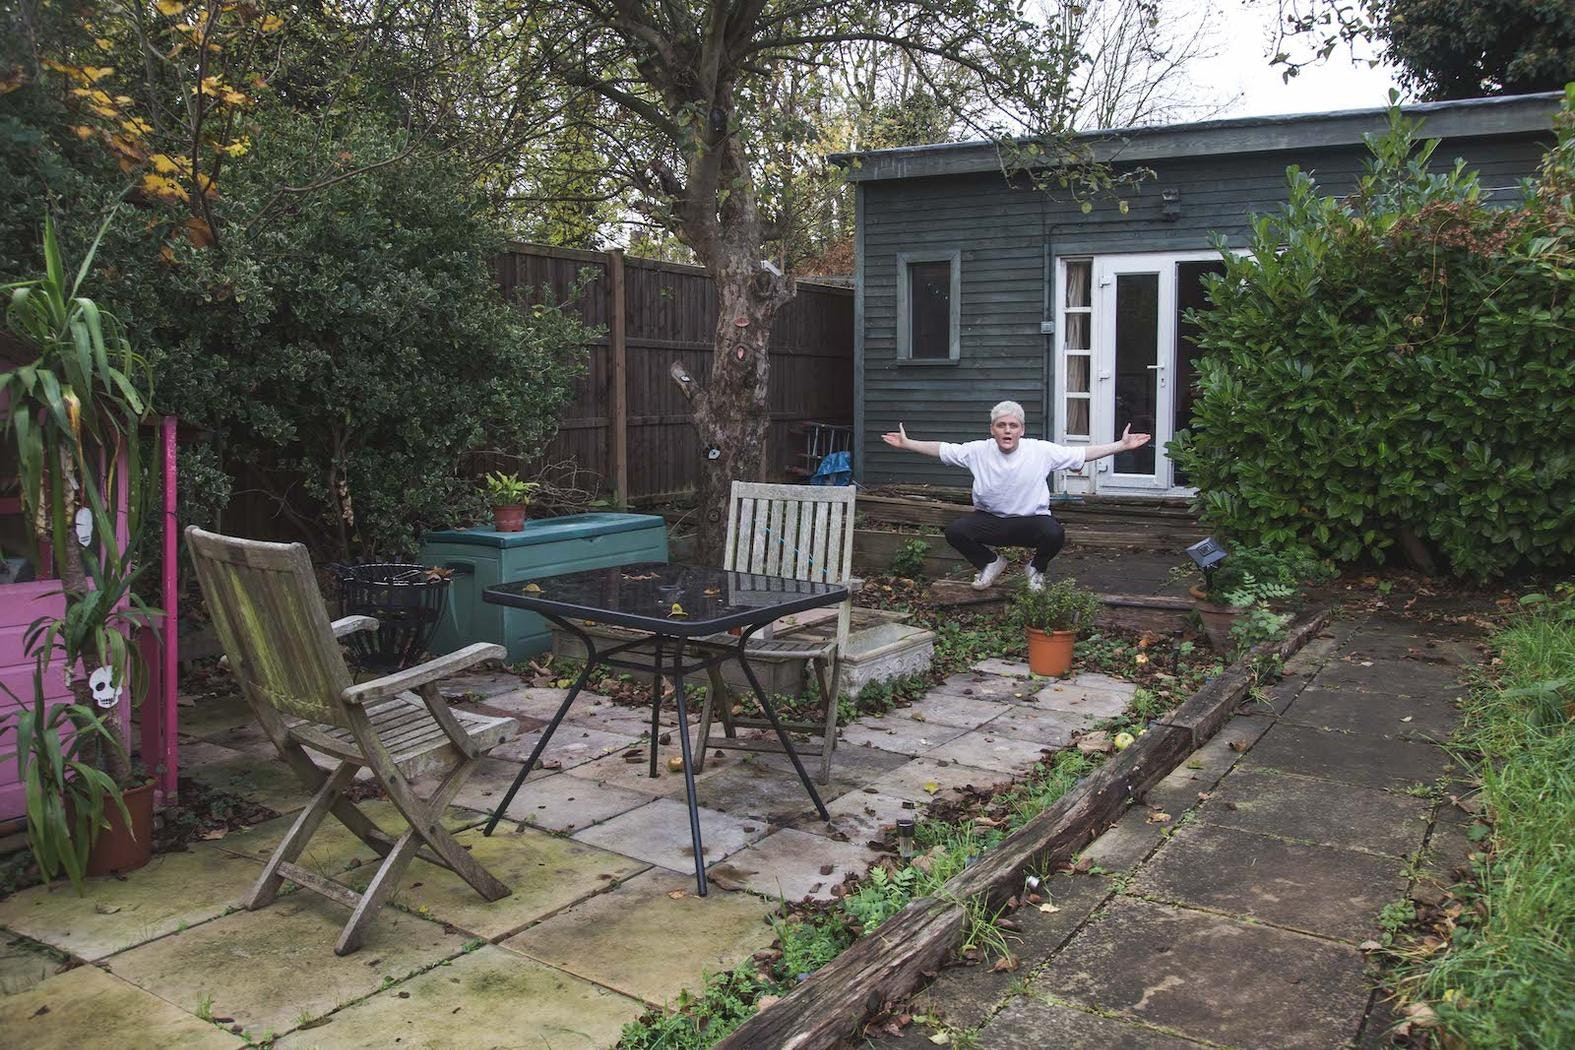 Believe nothing: The hoax of the Shed at Dulwich